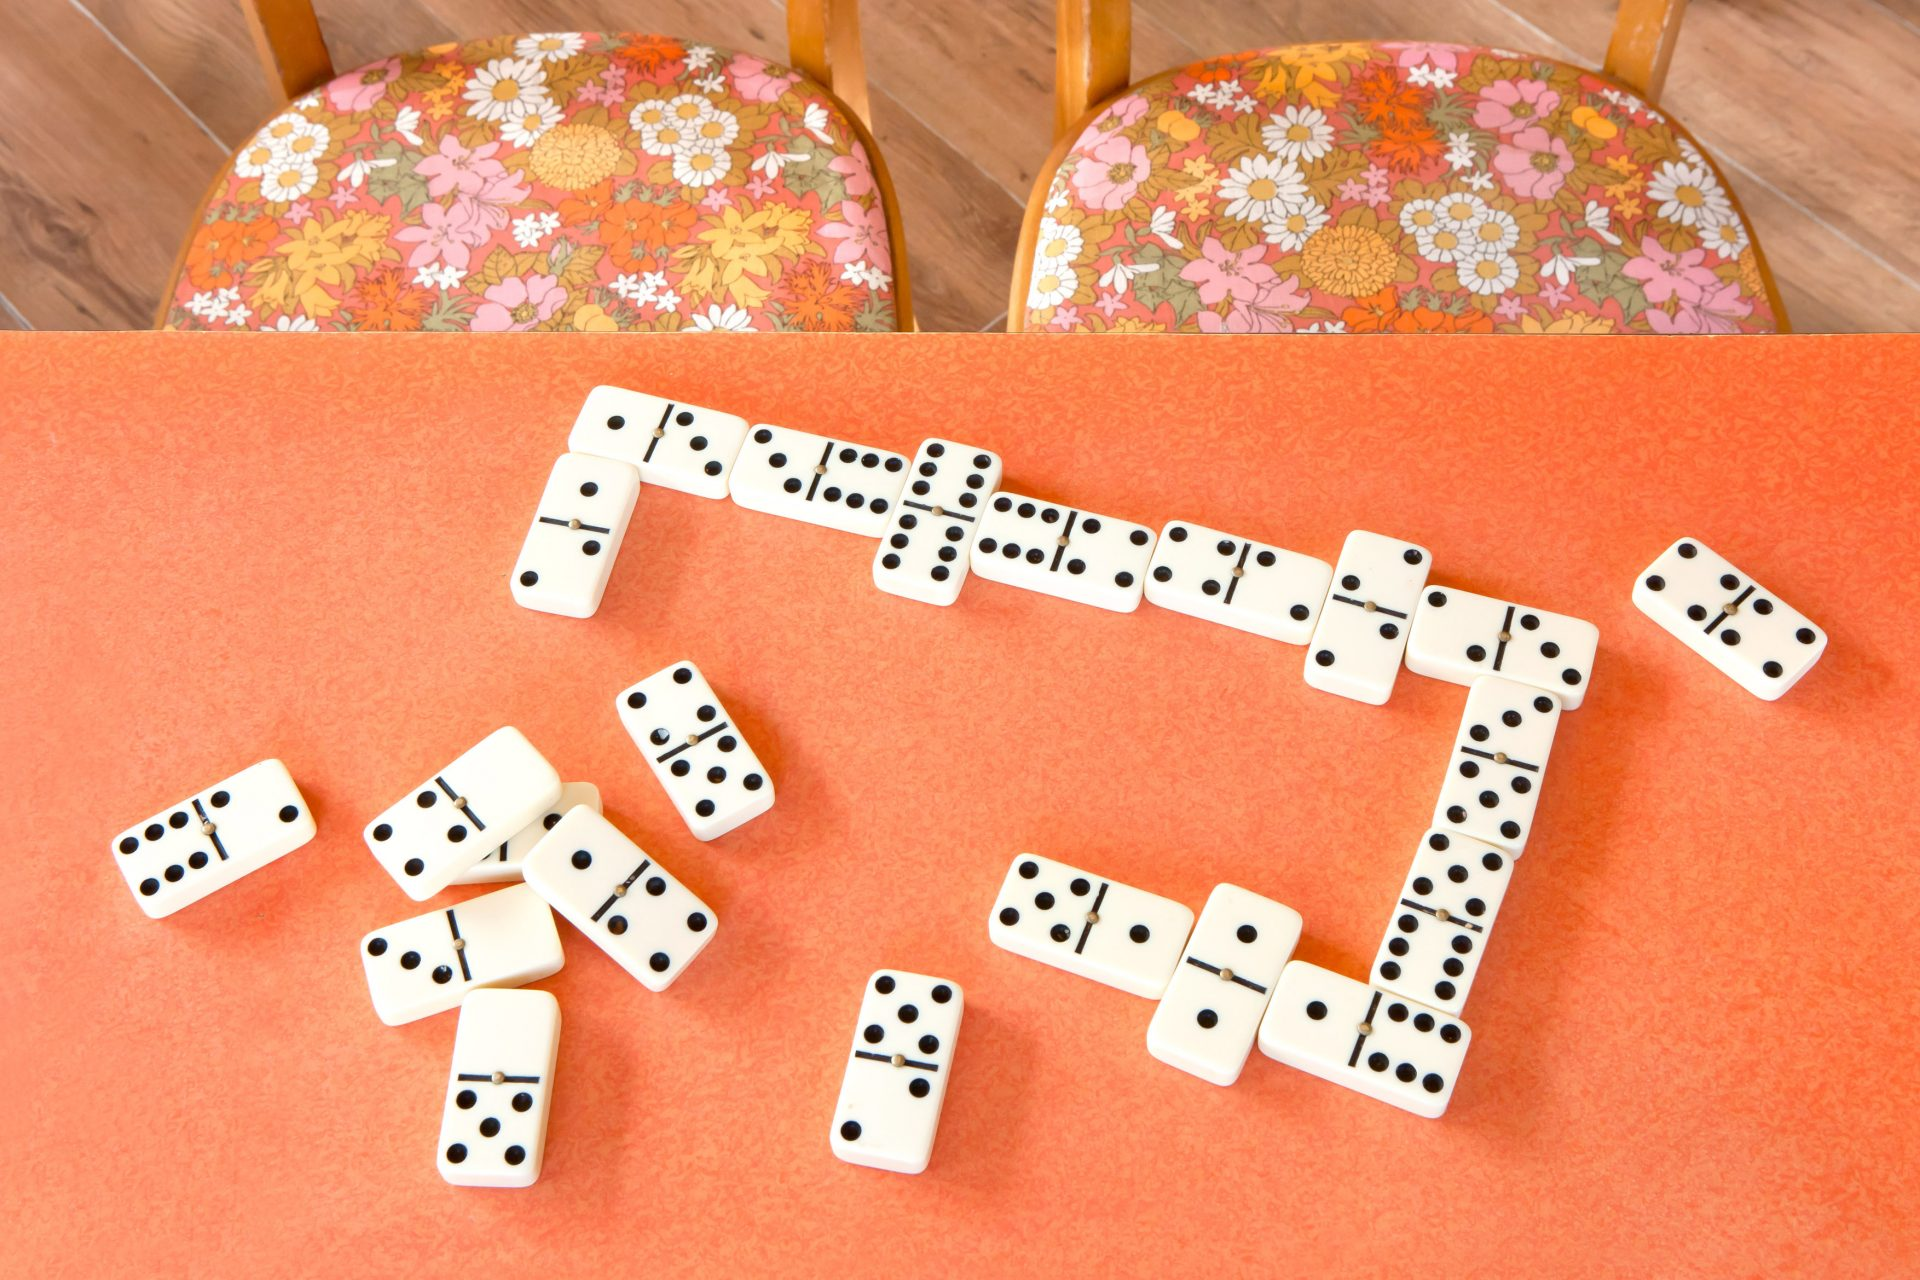 Shaw & Shaw – Dominoes on an orange table vintage chairs – Shaw and Shaw Advertising photographers Manchester photographer graphic image